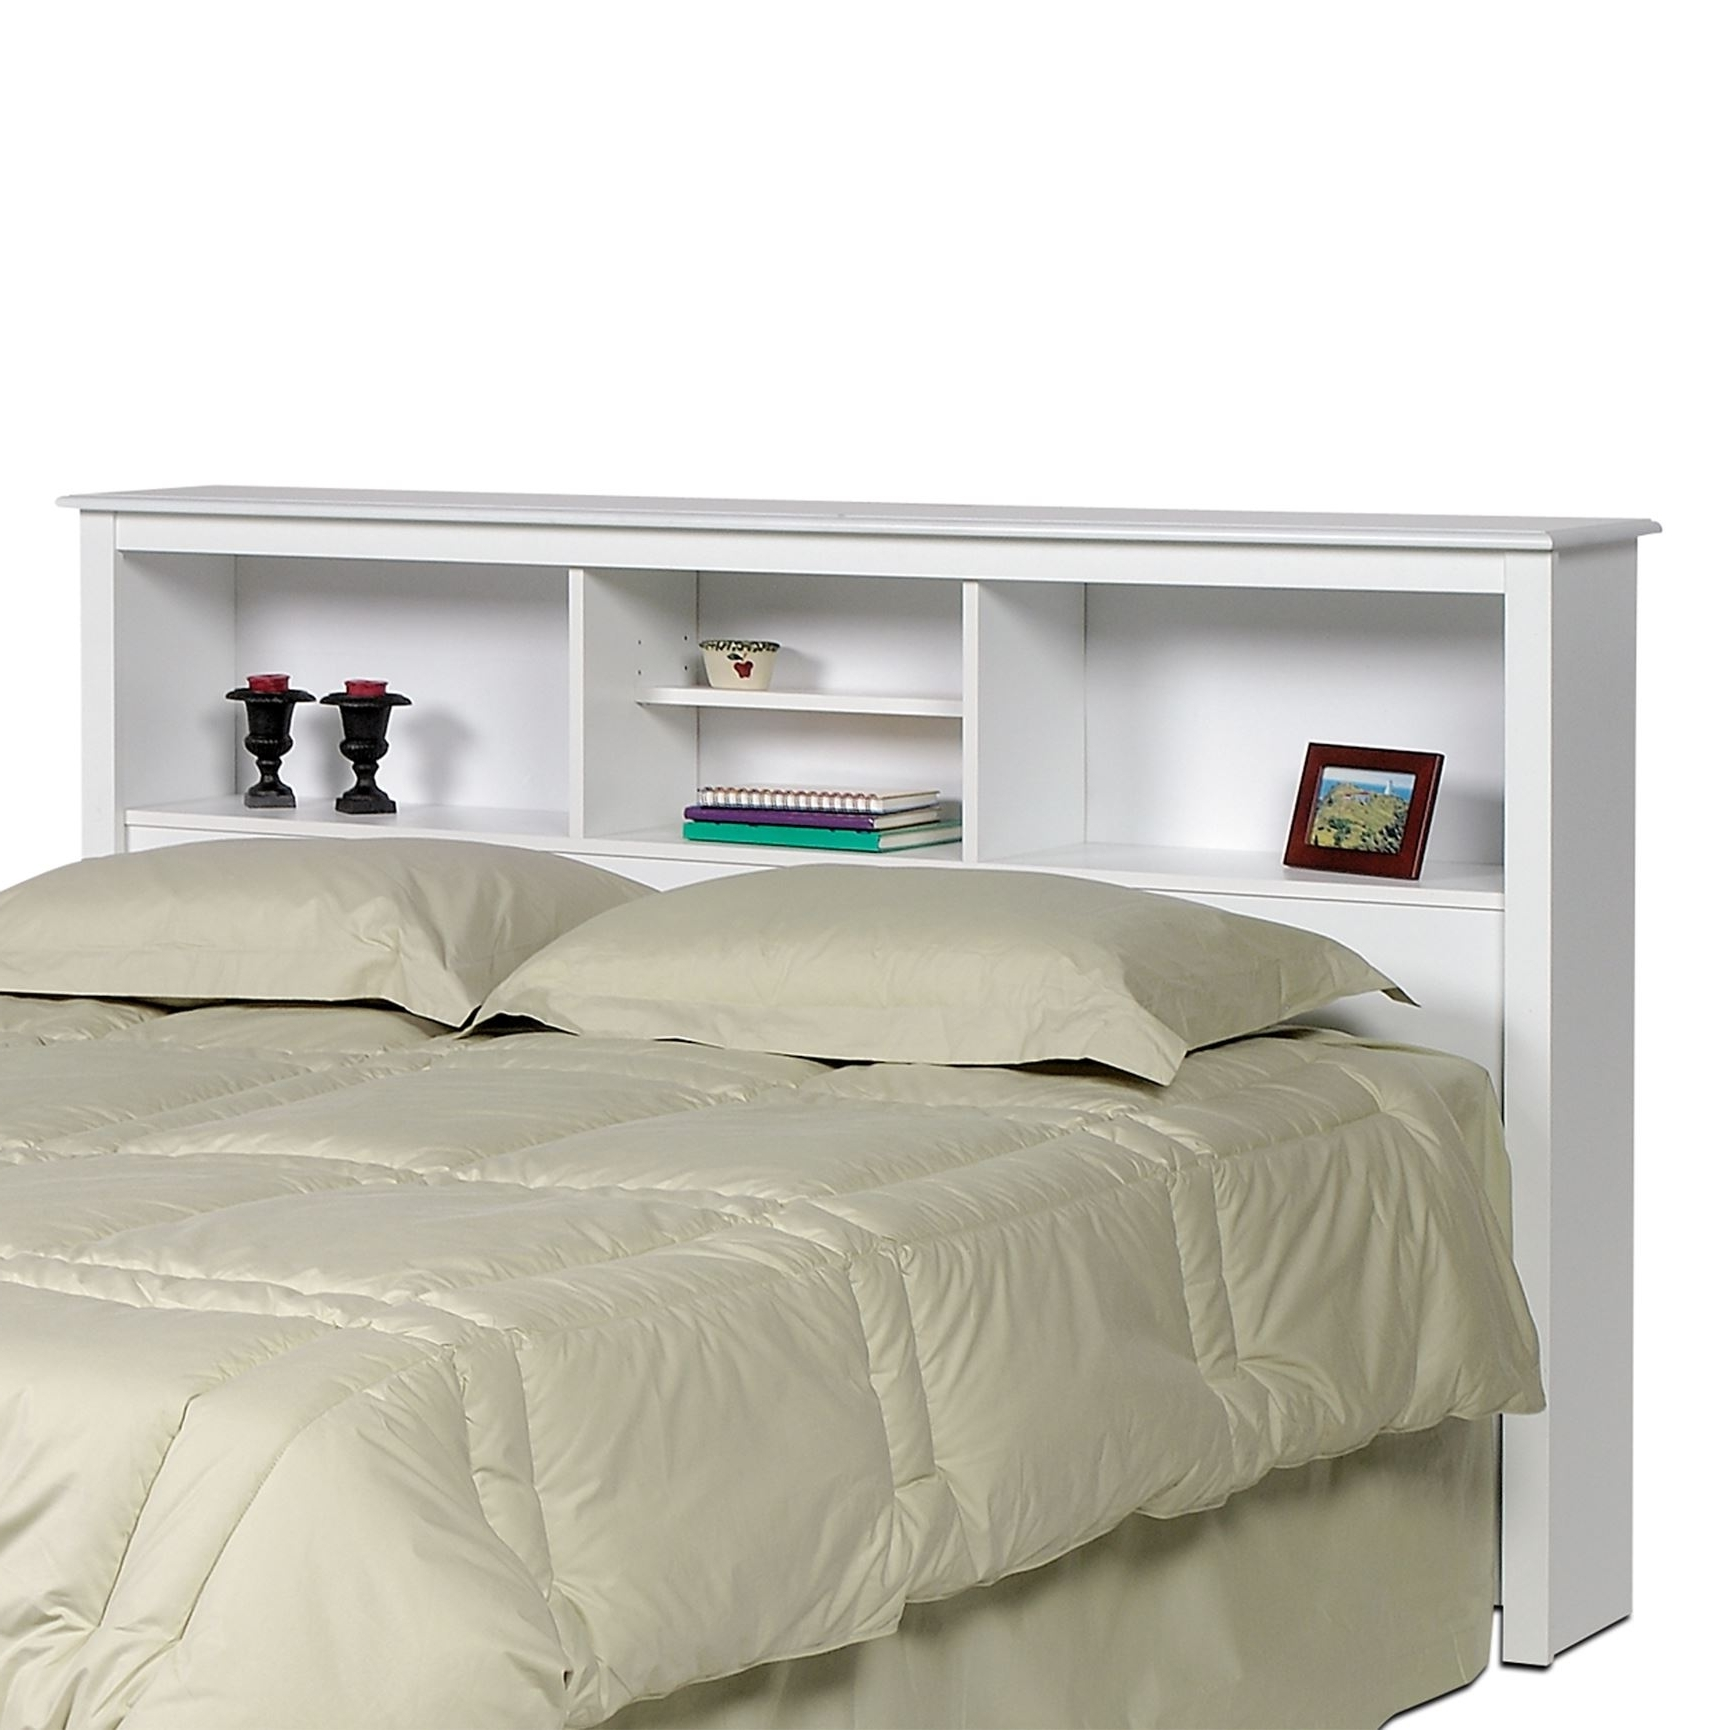 Trendy Queen Bookcases Headboard Pertaining To Monterey White Double / Queen Bookcase Headboard (View 13 of 15)